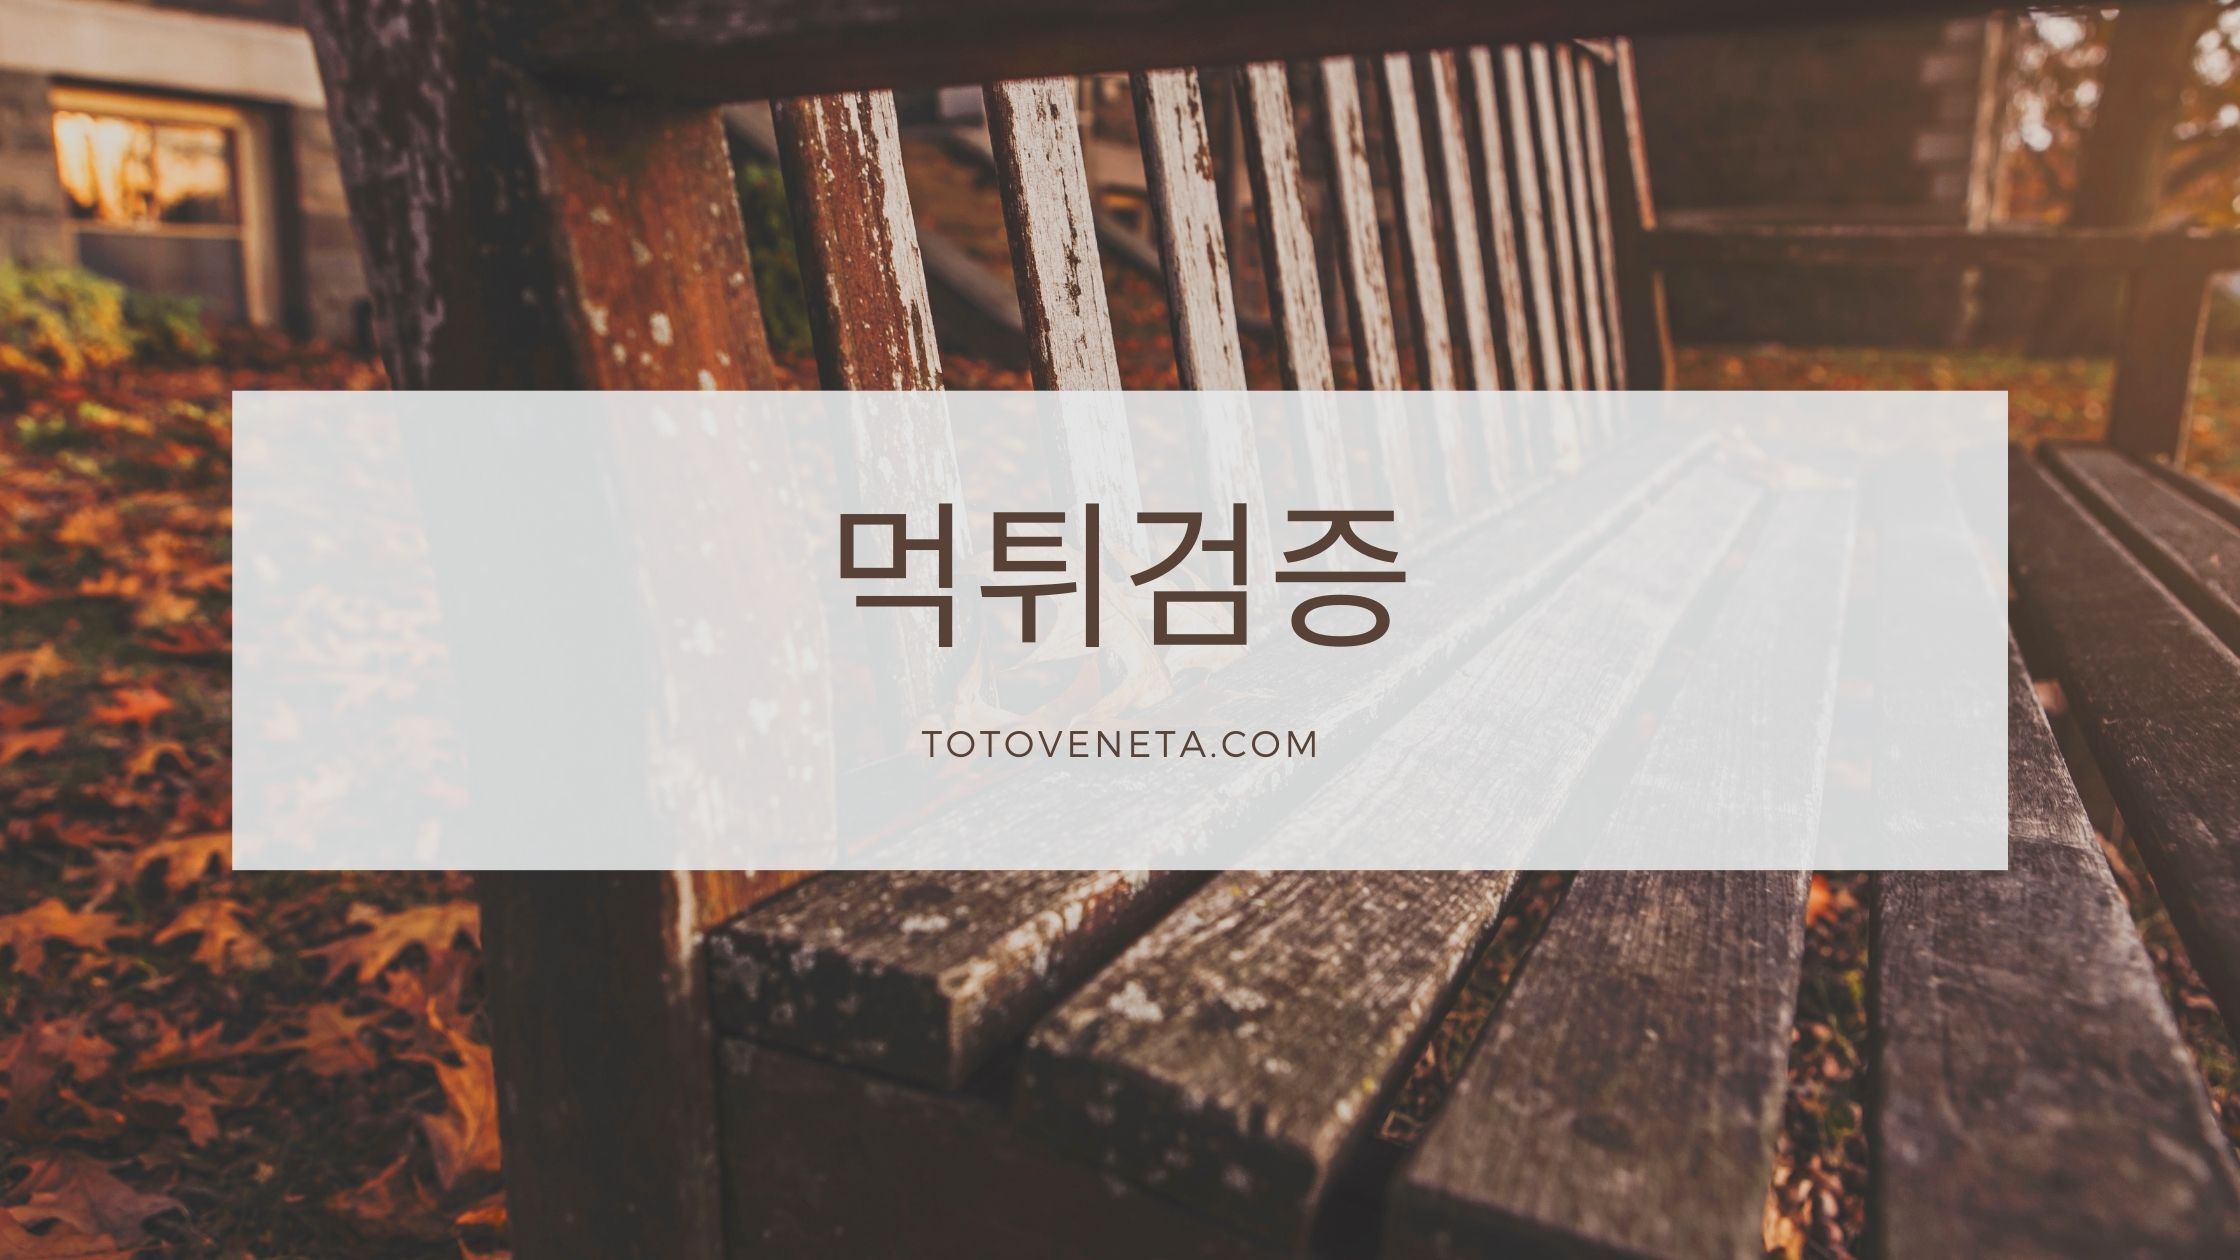 TOTO Sports Betting Site in Korea Teaches Online Gambling